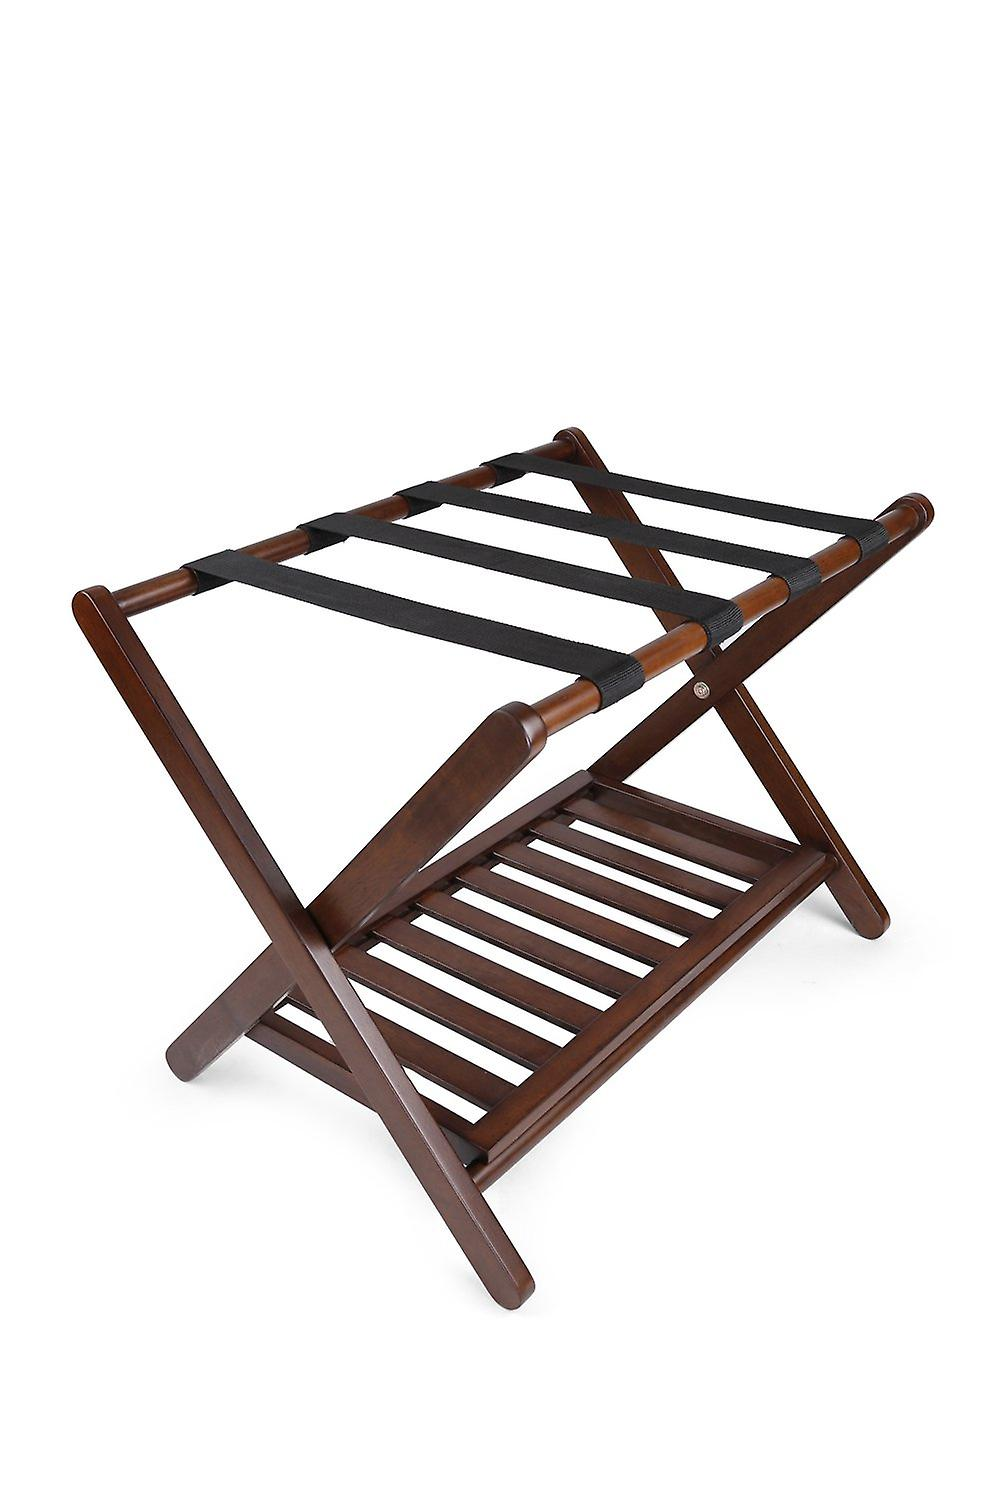 Penguin Home Classic Luggage Rack Crafted in Solid Hardwood